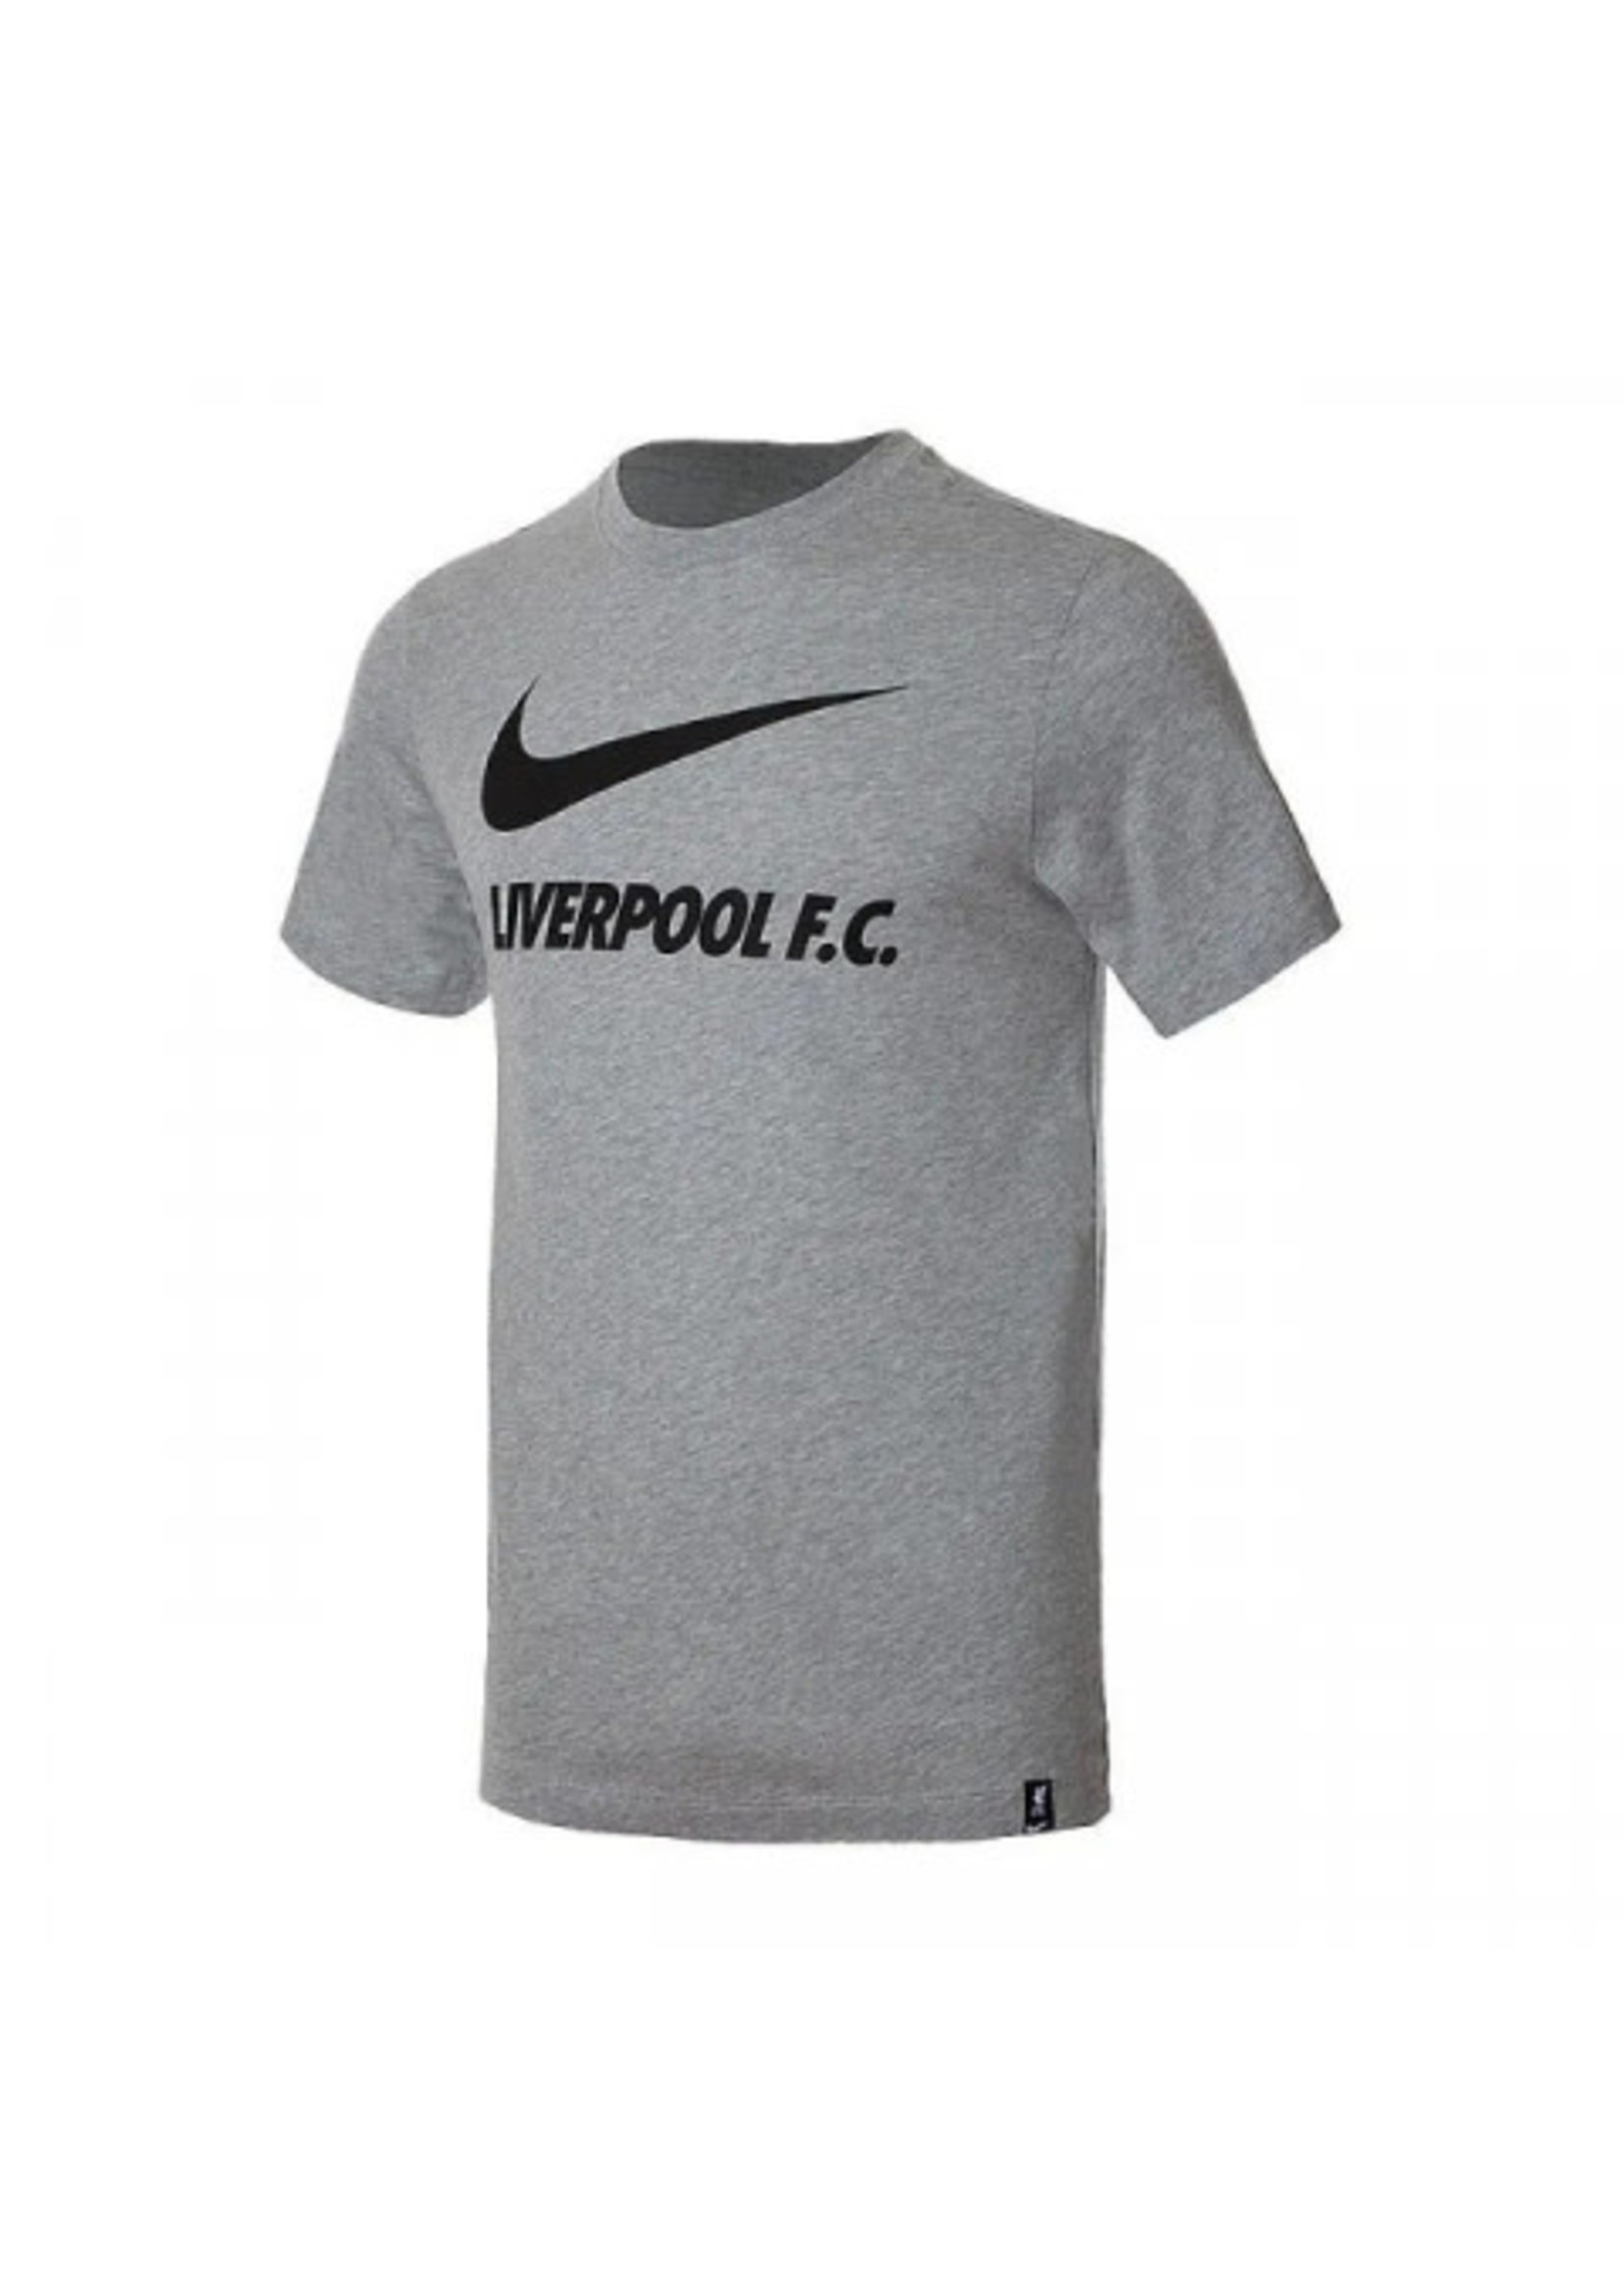 Nike Liverpool T-Shirt - Grey